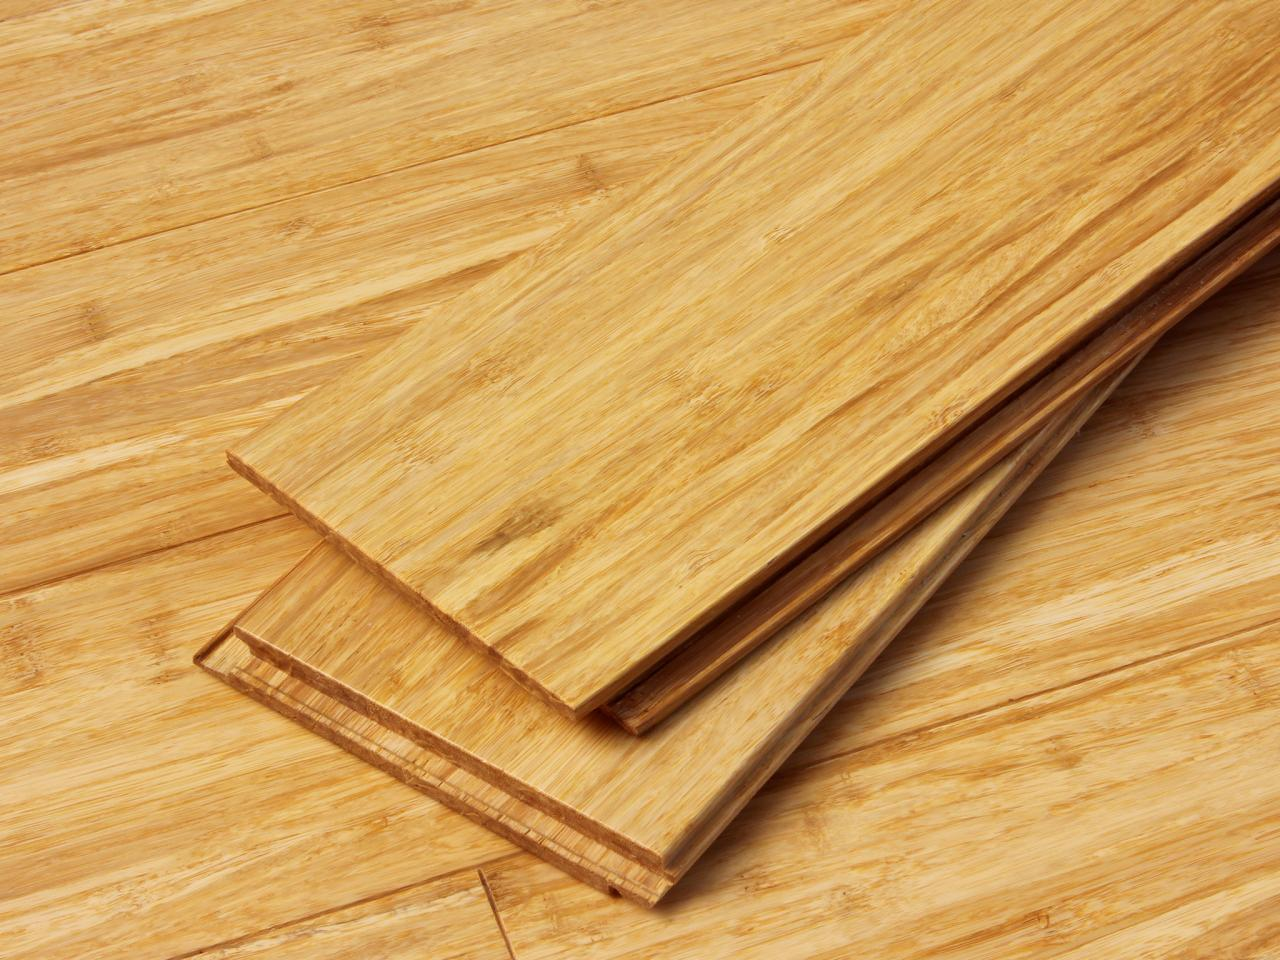 Bamboo Flooring - The Doodle House